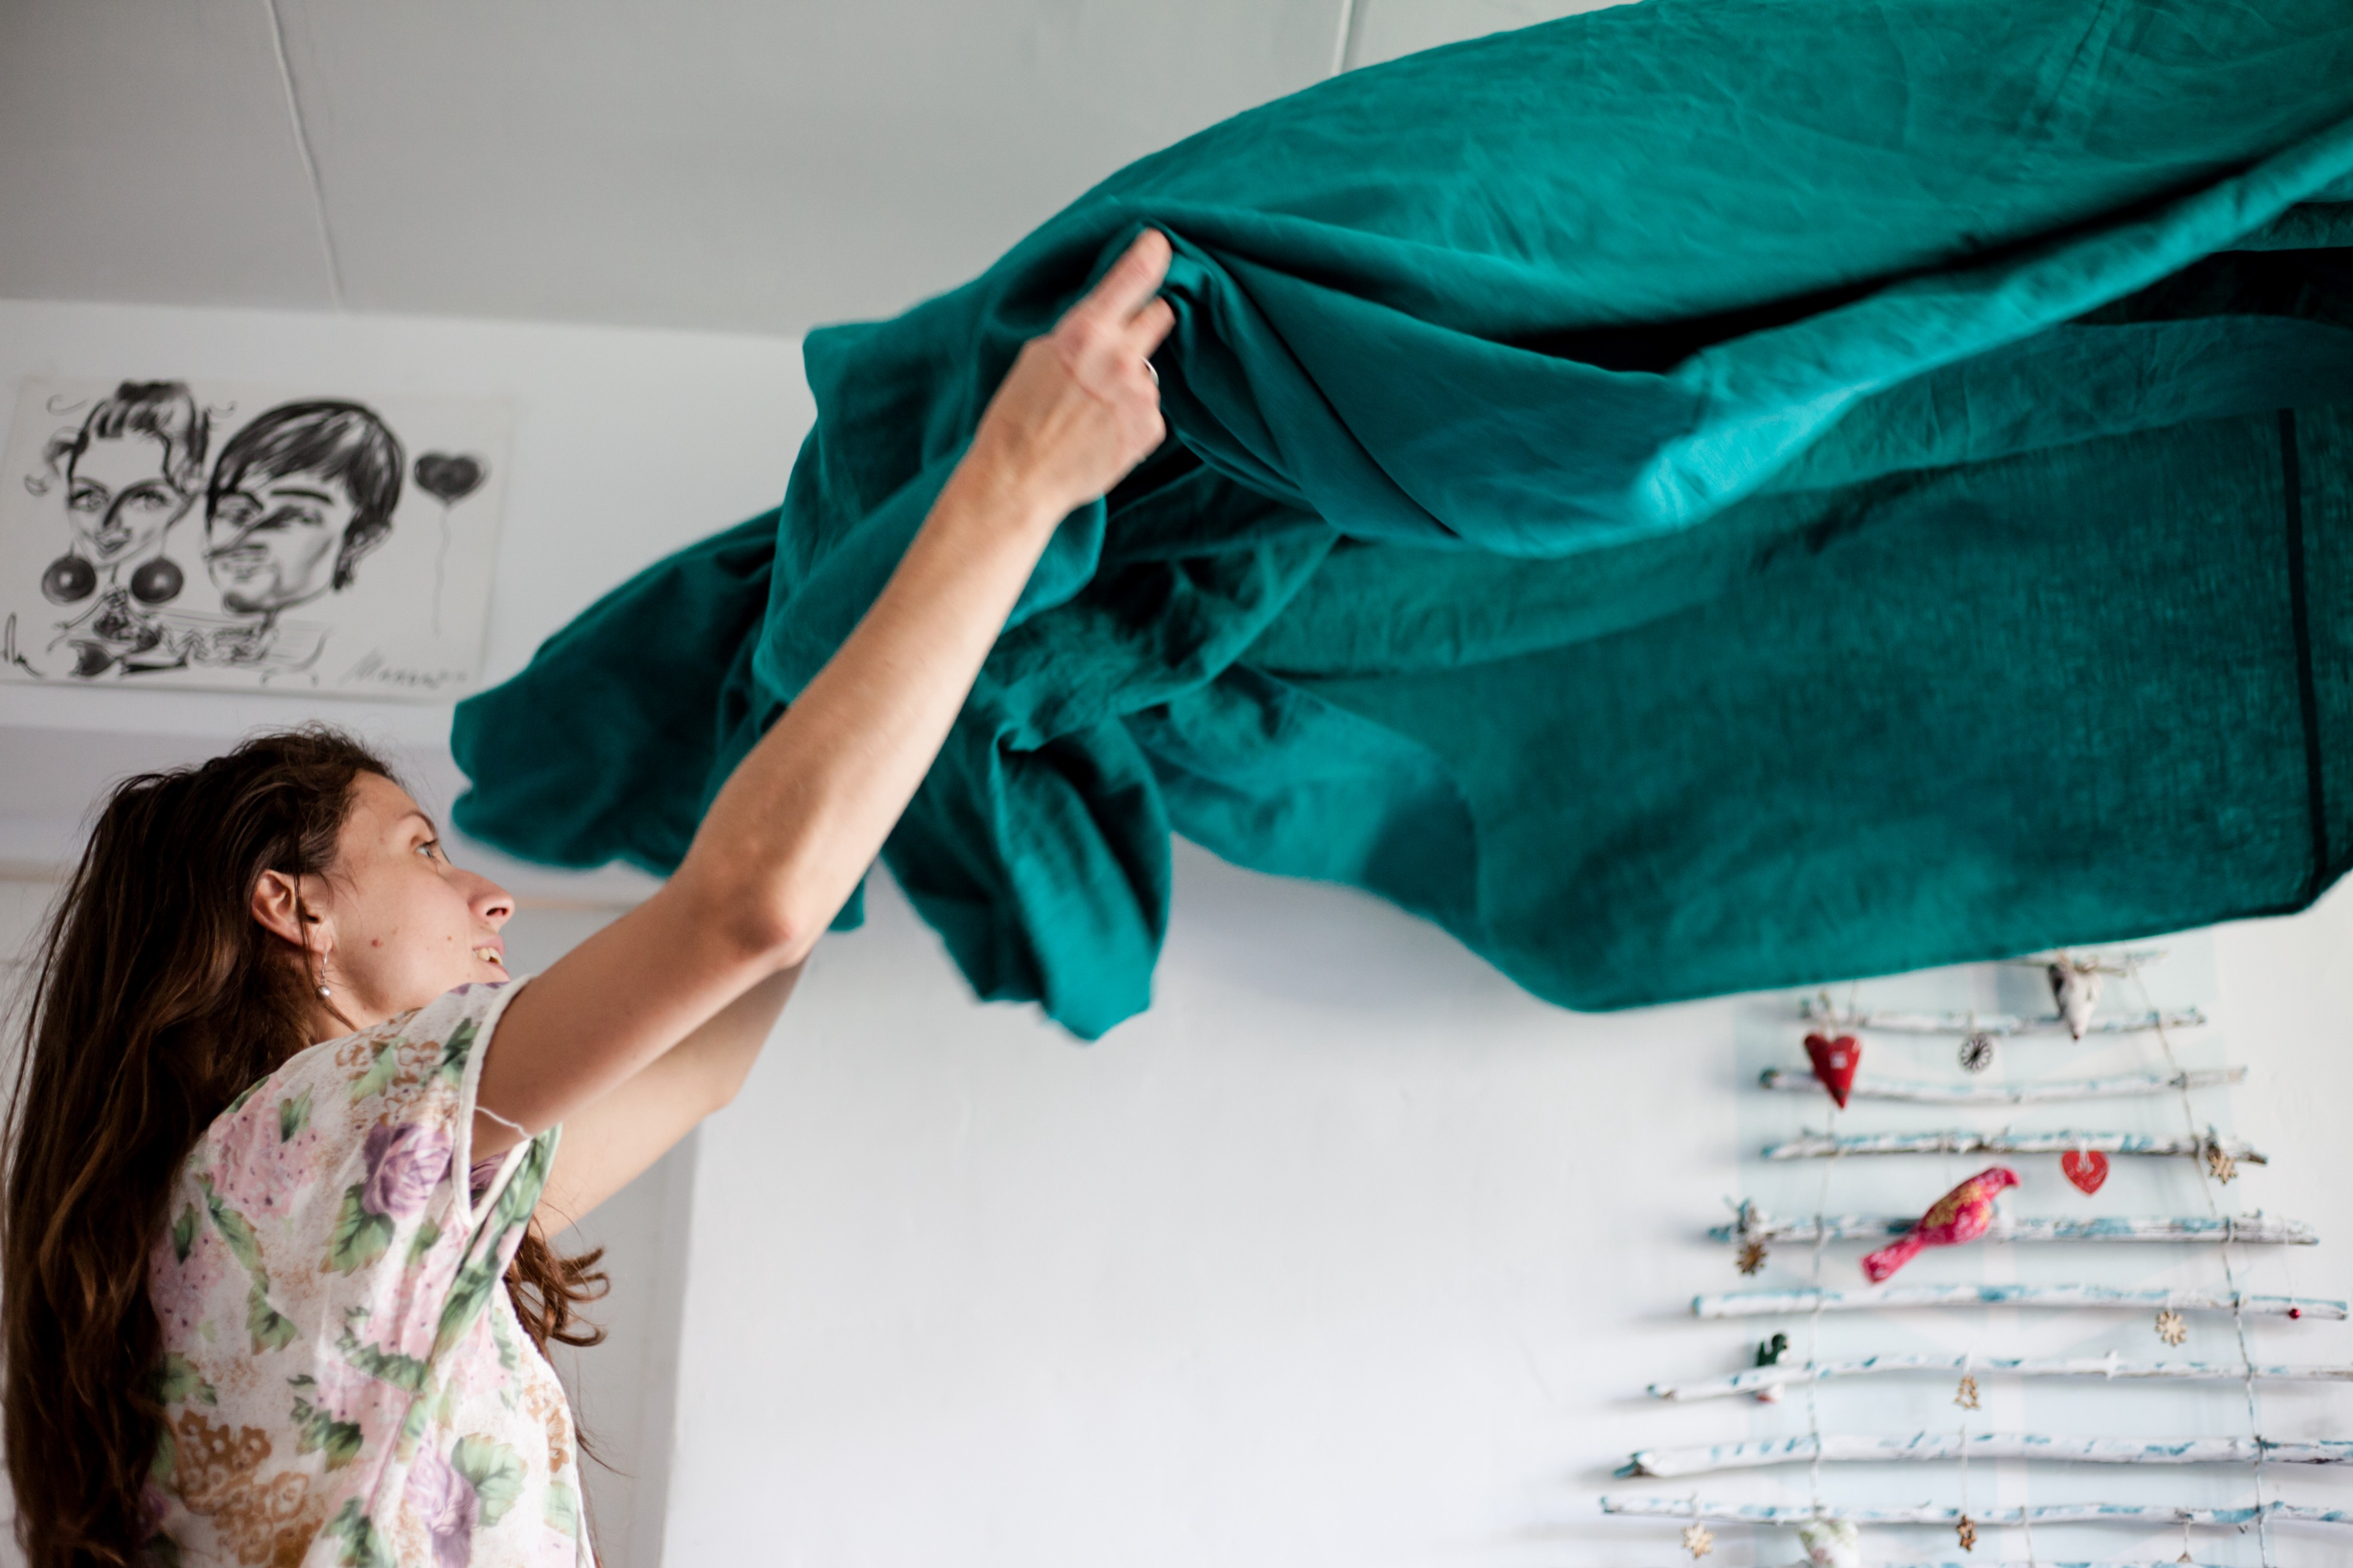 A woman with long brown hair throwing up a turquoise sheet before she makes a bed.